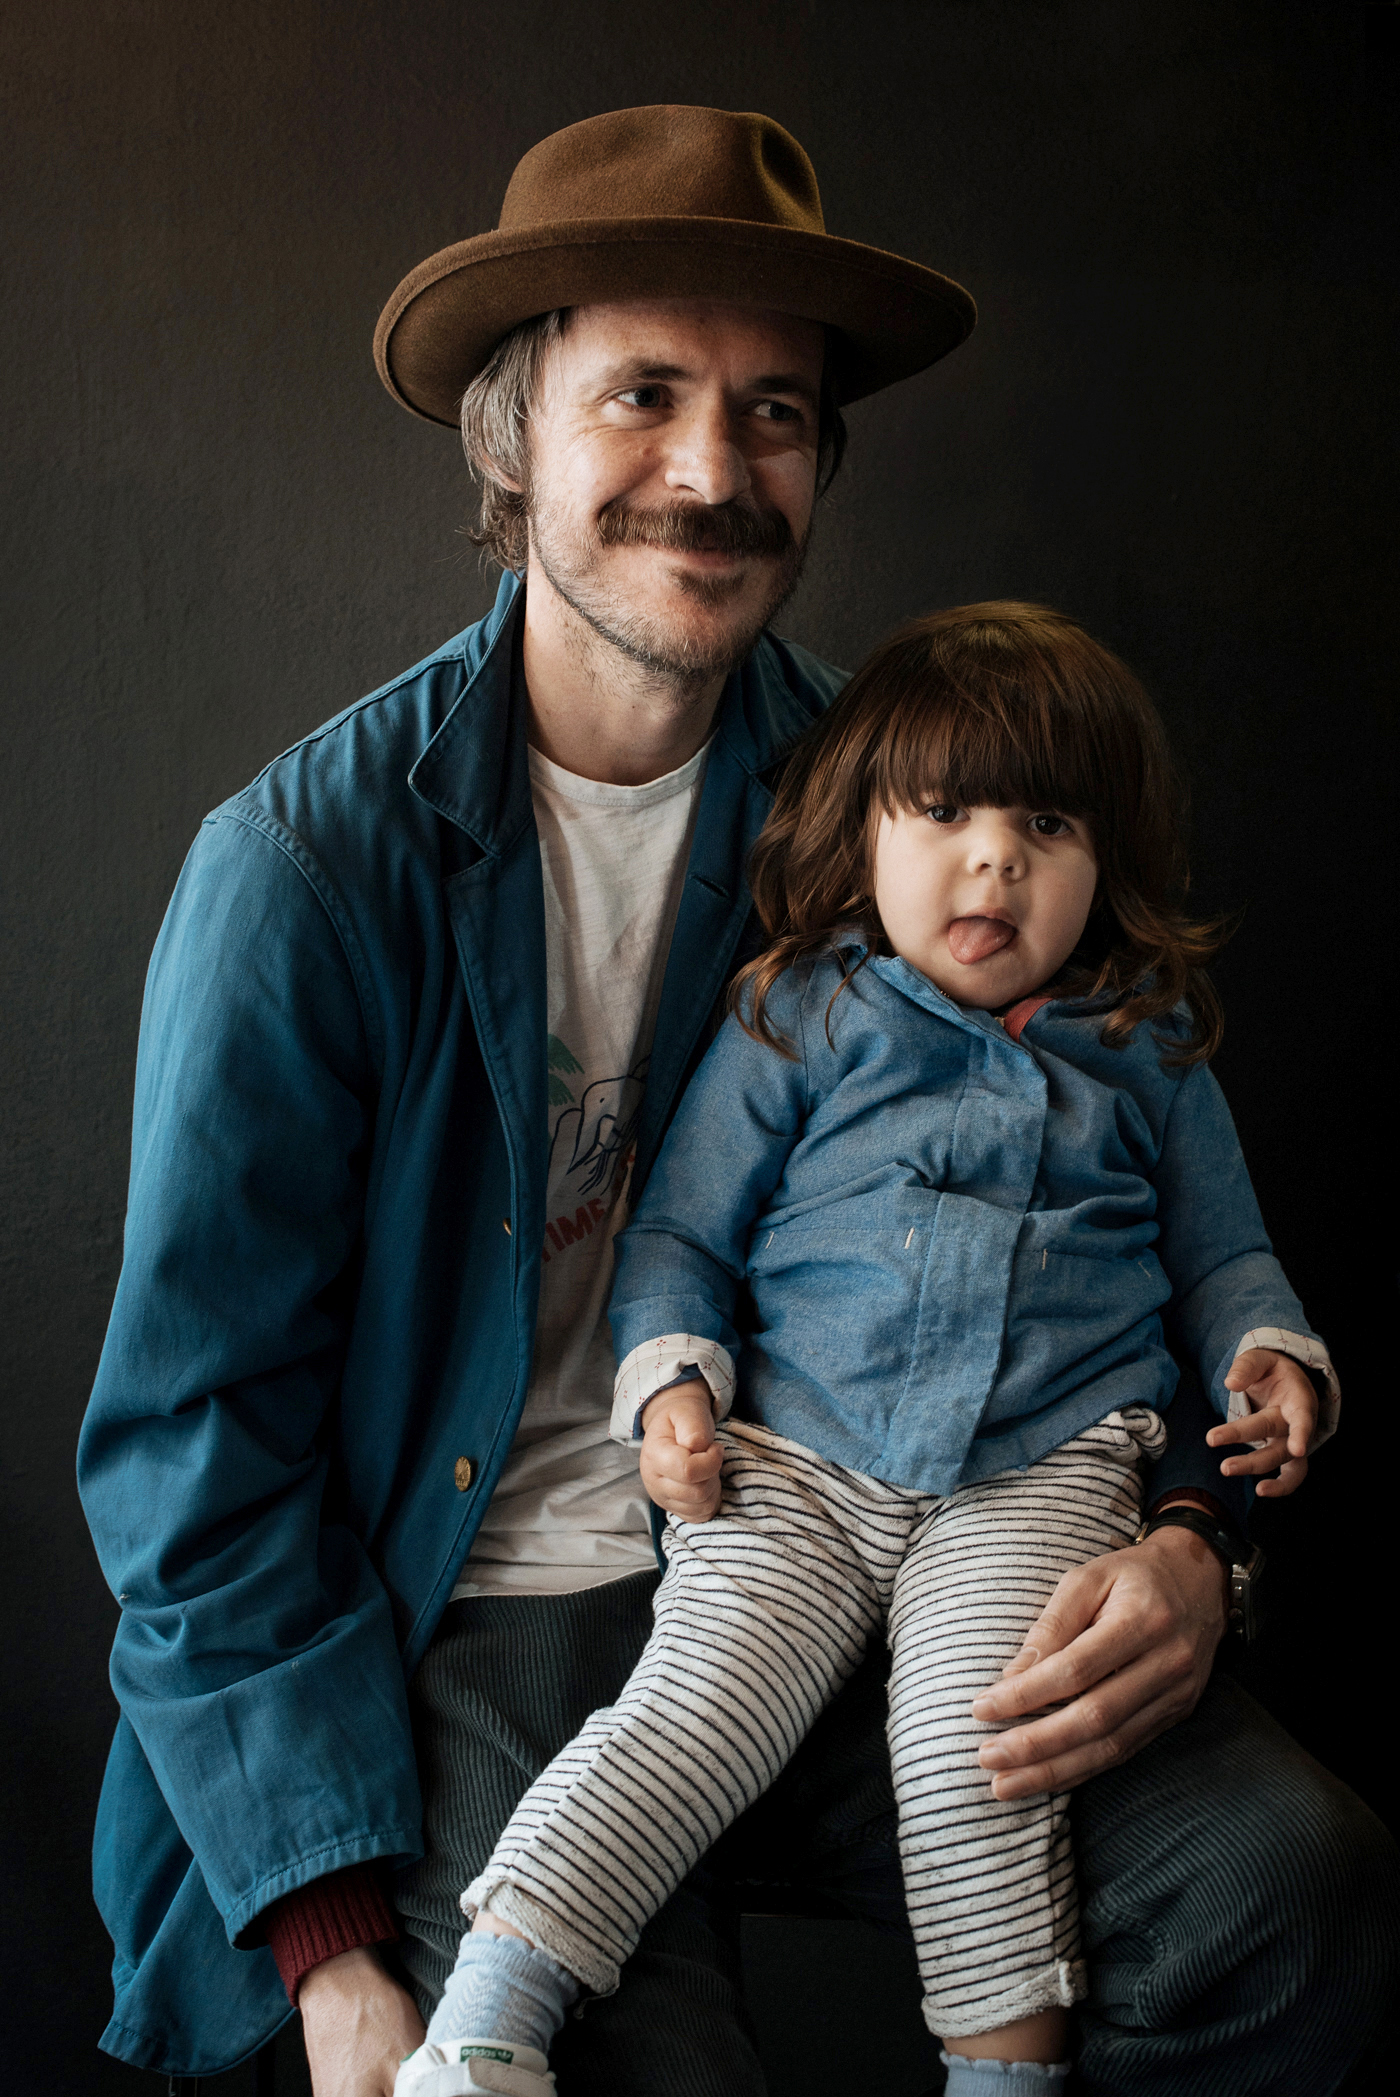 Adam Walmsley  and his daughter Ren, captured at   The MITT Mrkt  . in the lead up towards  Father's Day  here in Australia.